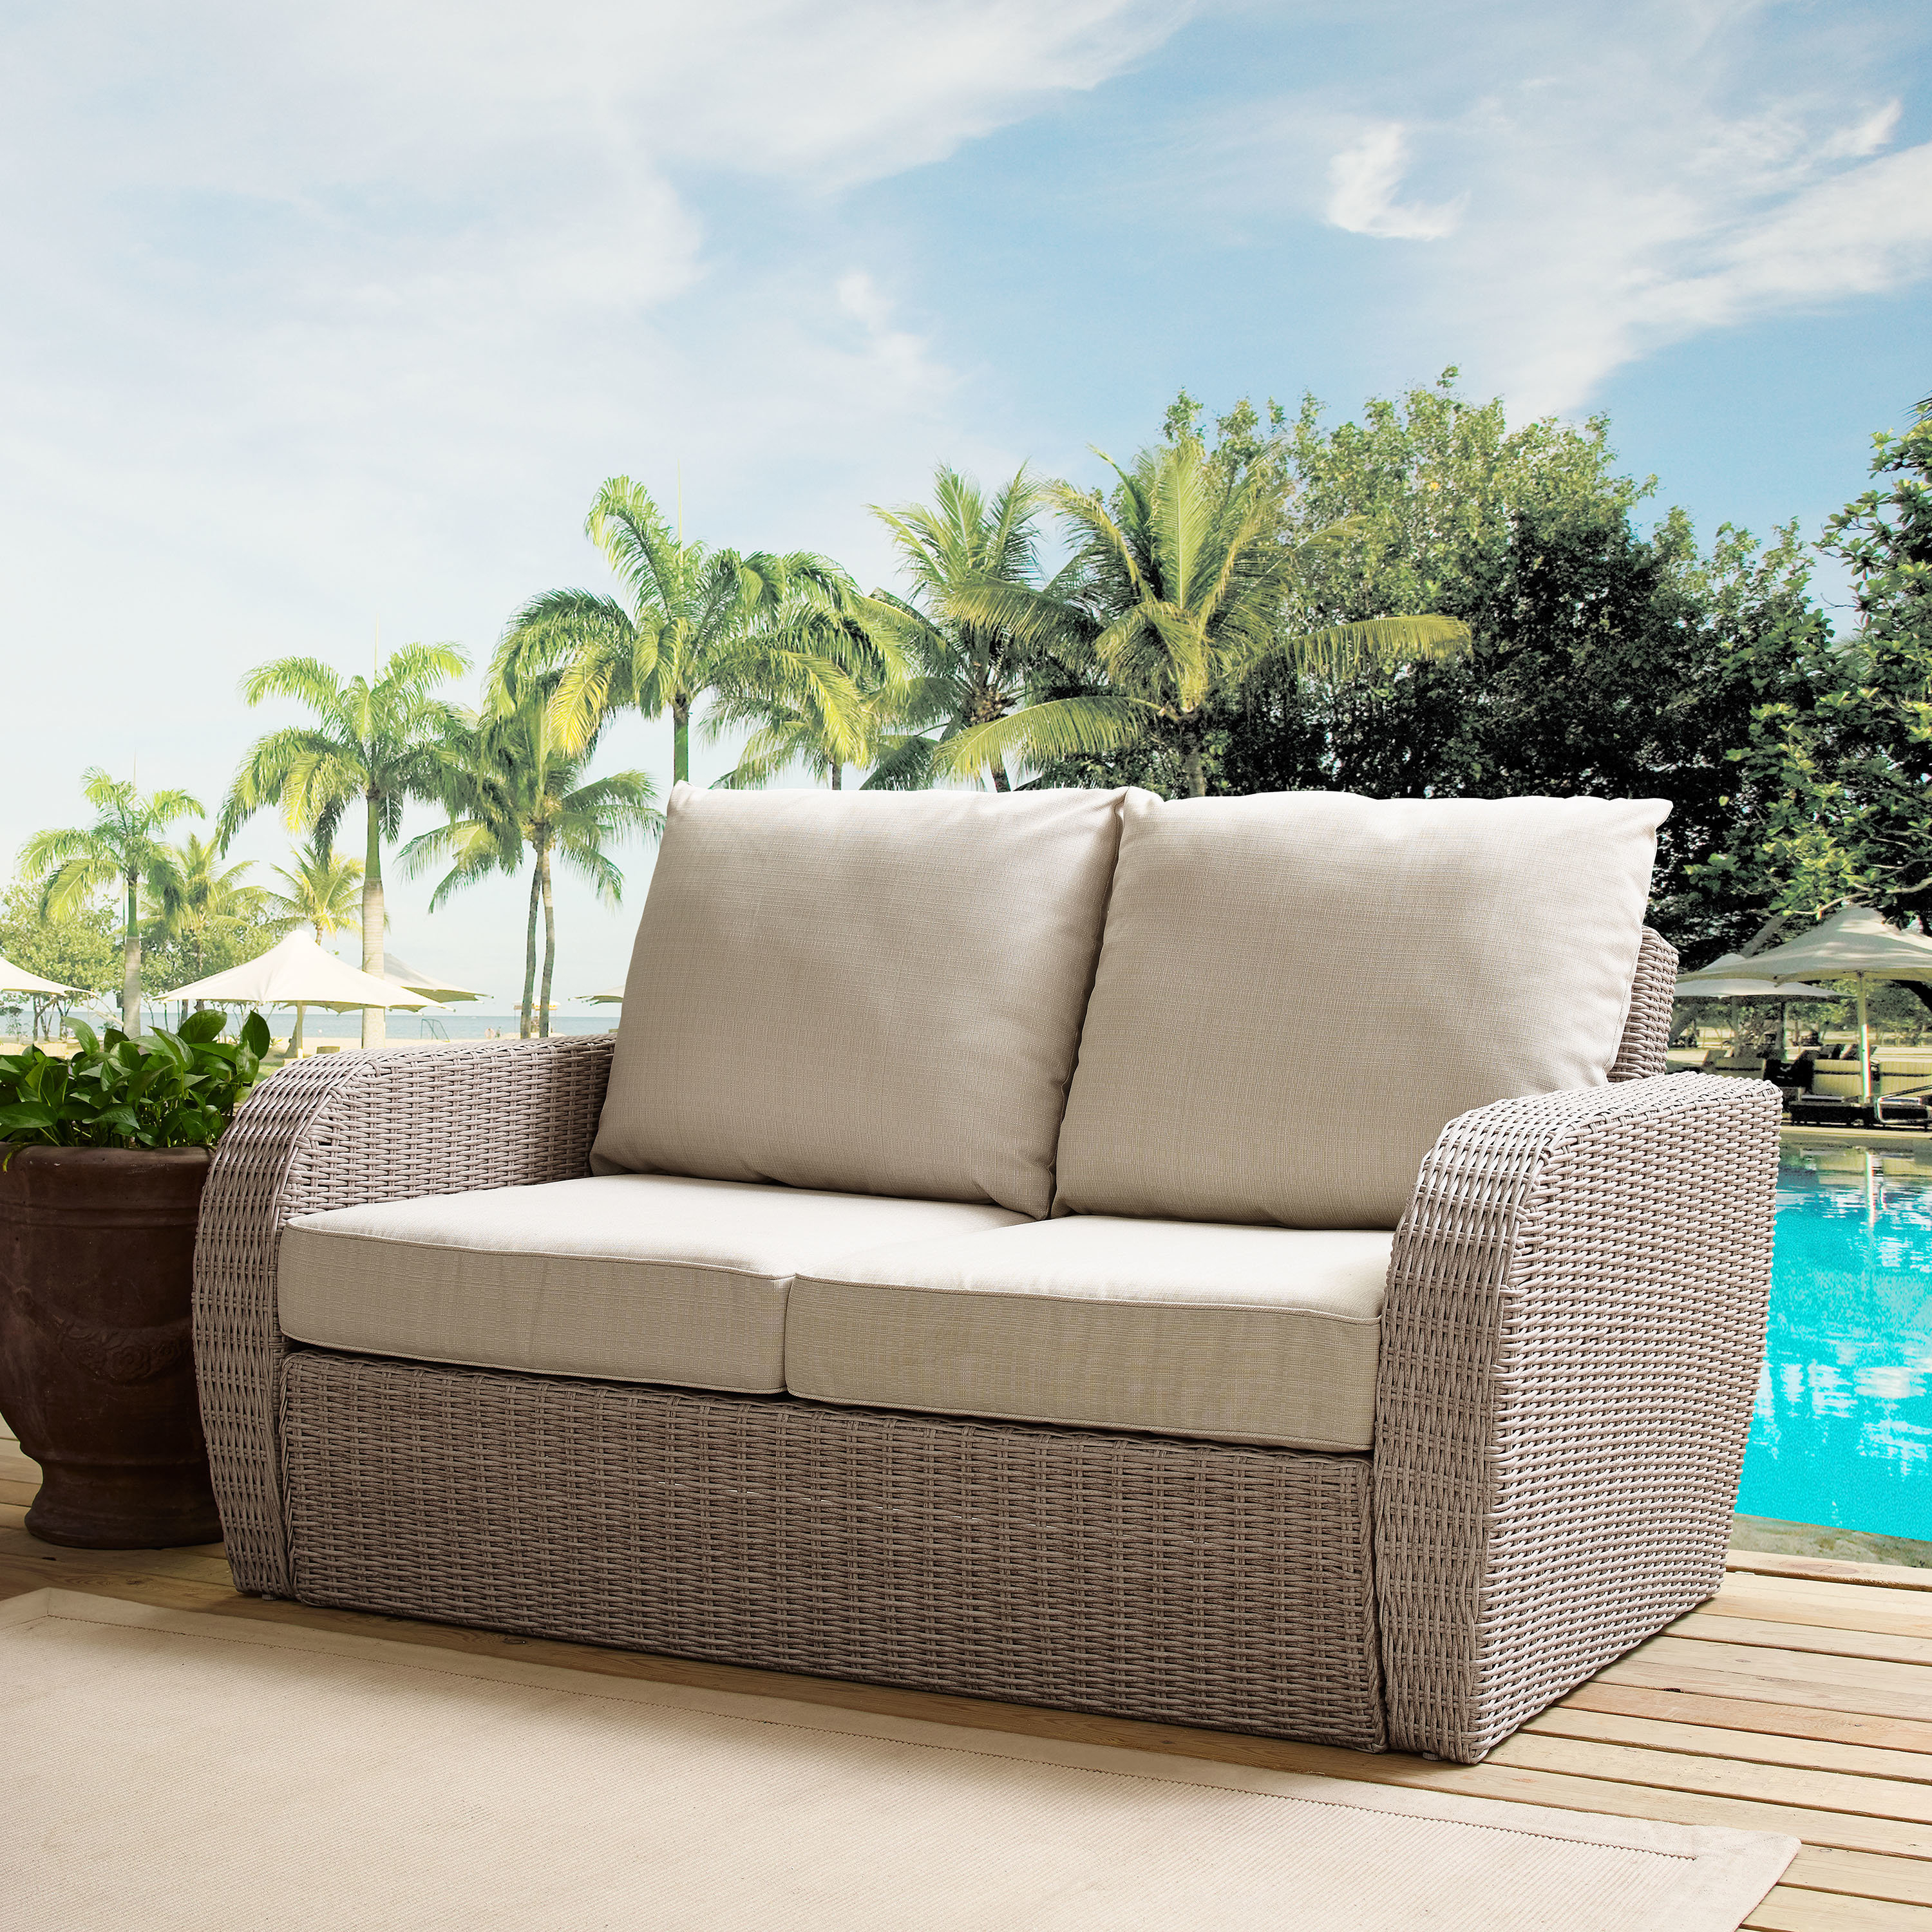 Most Recently Released Huddleson Loveseats With Cushion For Zakrzewski Wicker Loveseat With Cushion (View 16 of 20)